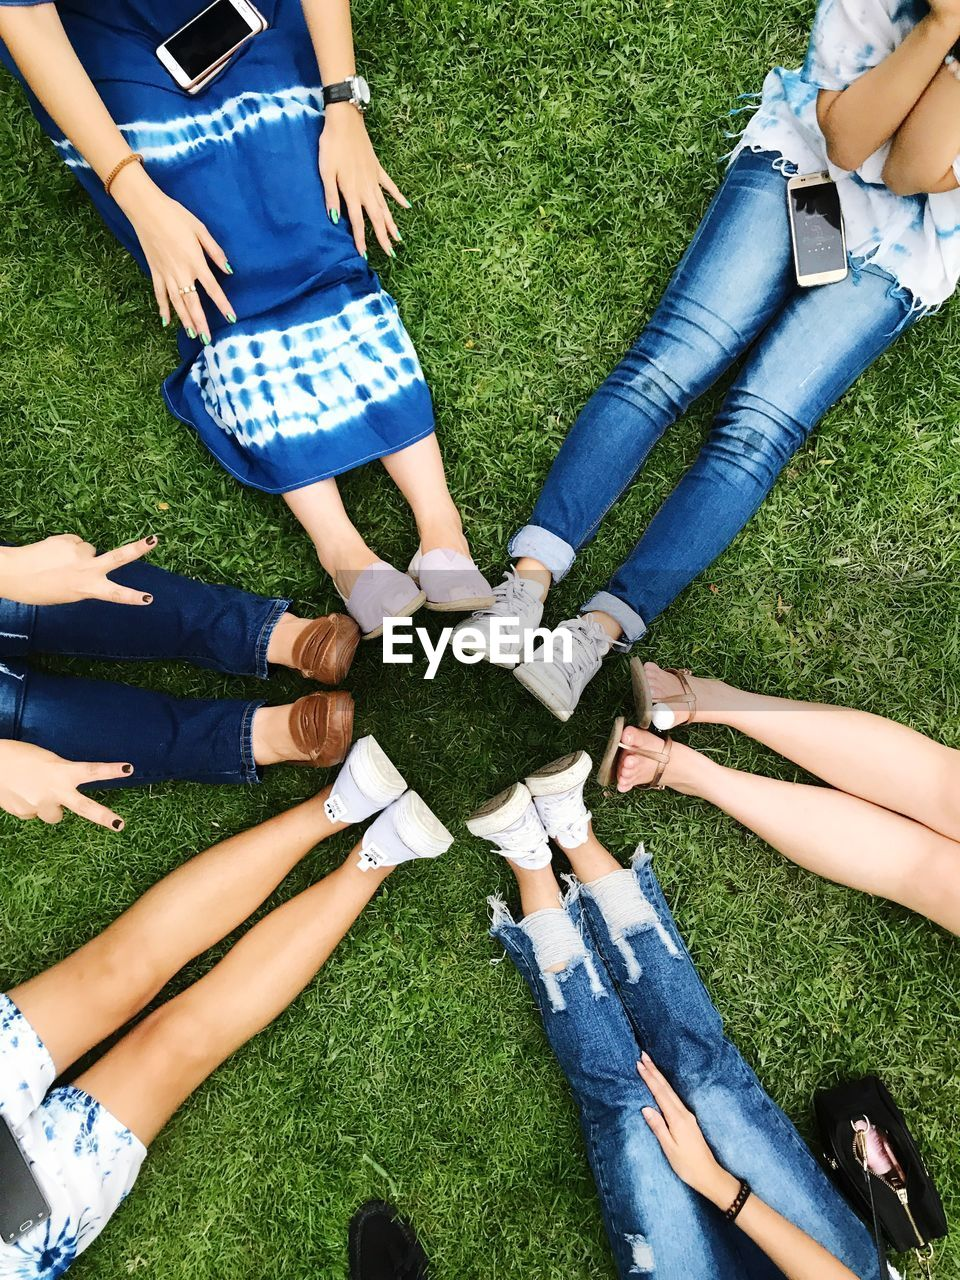 group of people, real people, grass, togetherness, women, friendship, human hand, leisure activity, people, blue, casual clothing, human body part, lifestyles, plant, group, day, high angle view, nature, medium group of people, cooperation, body part, hand, teamwork, finger